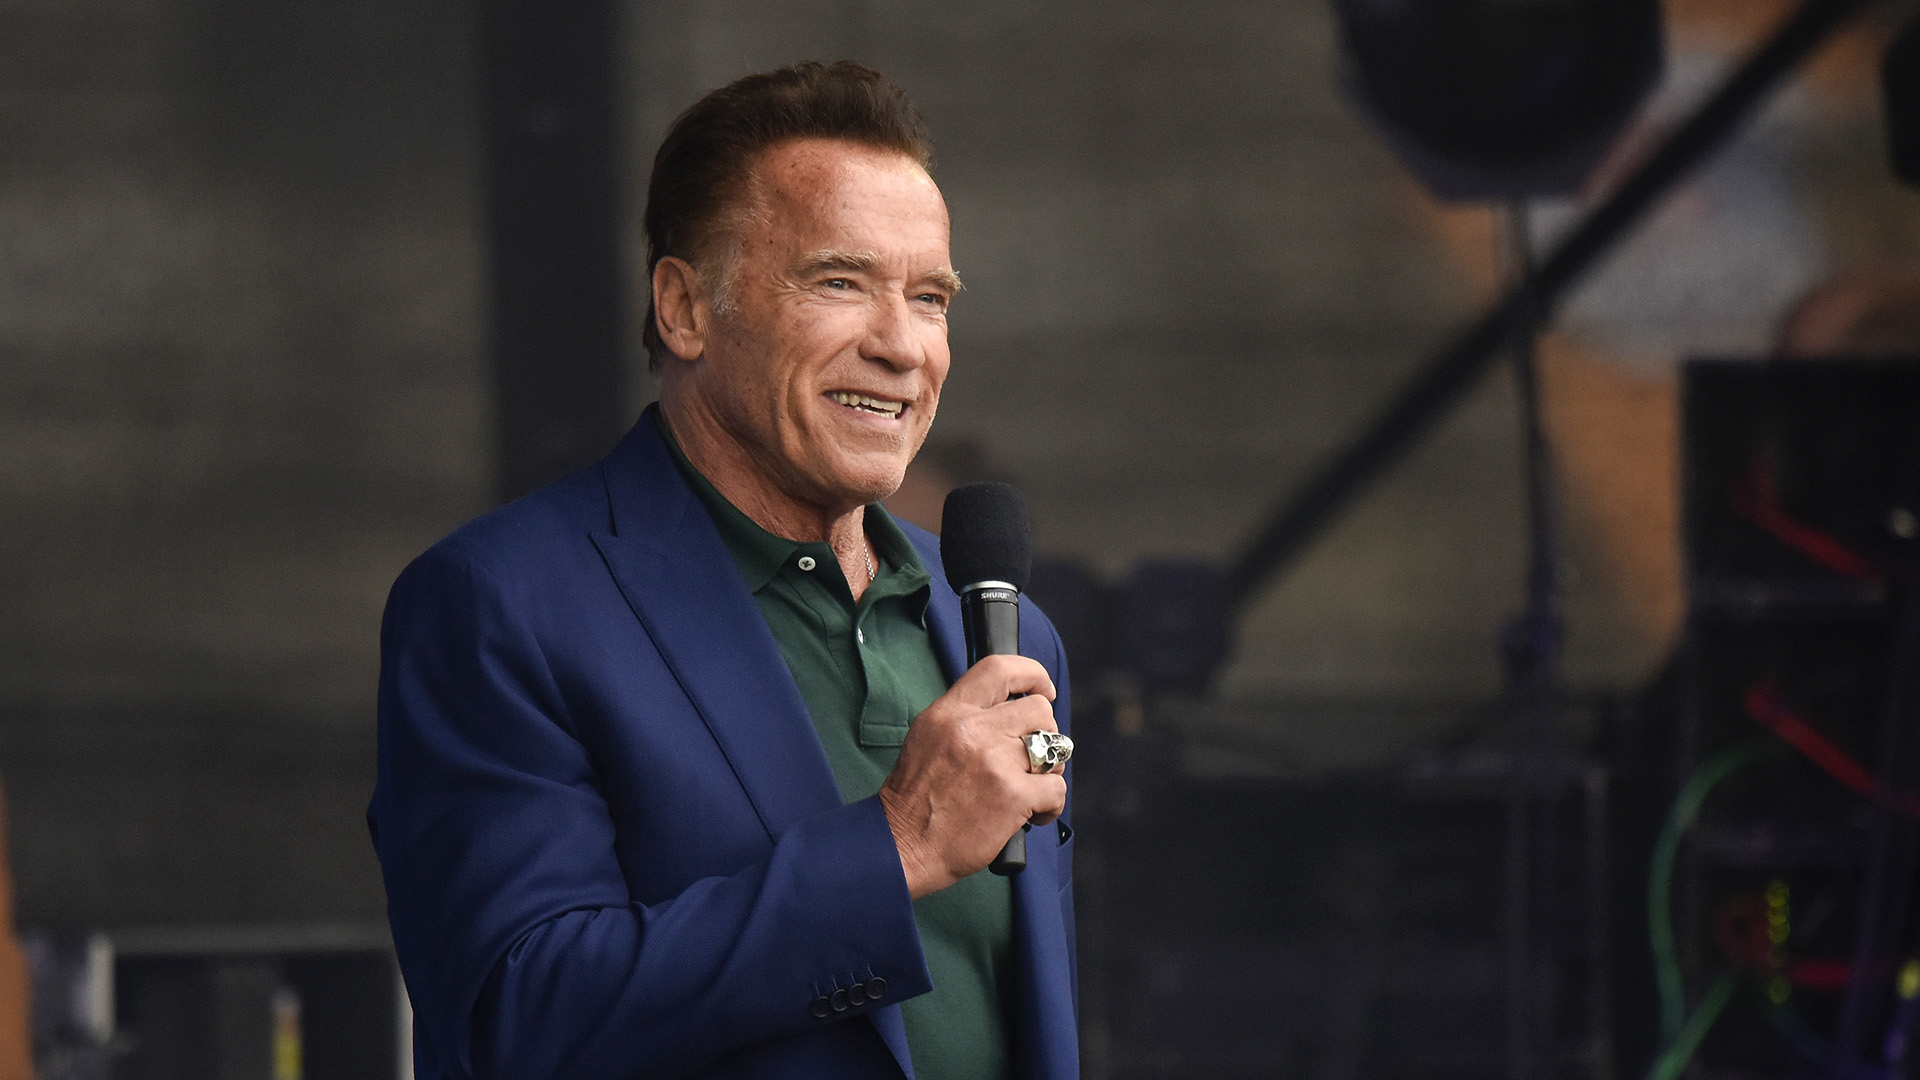 Arnold Schwarzenegger Reveals His Children 'Hated' His Move From Film To Politics